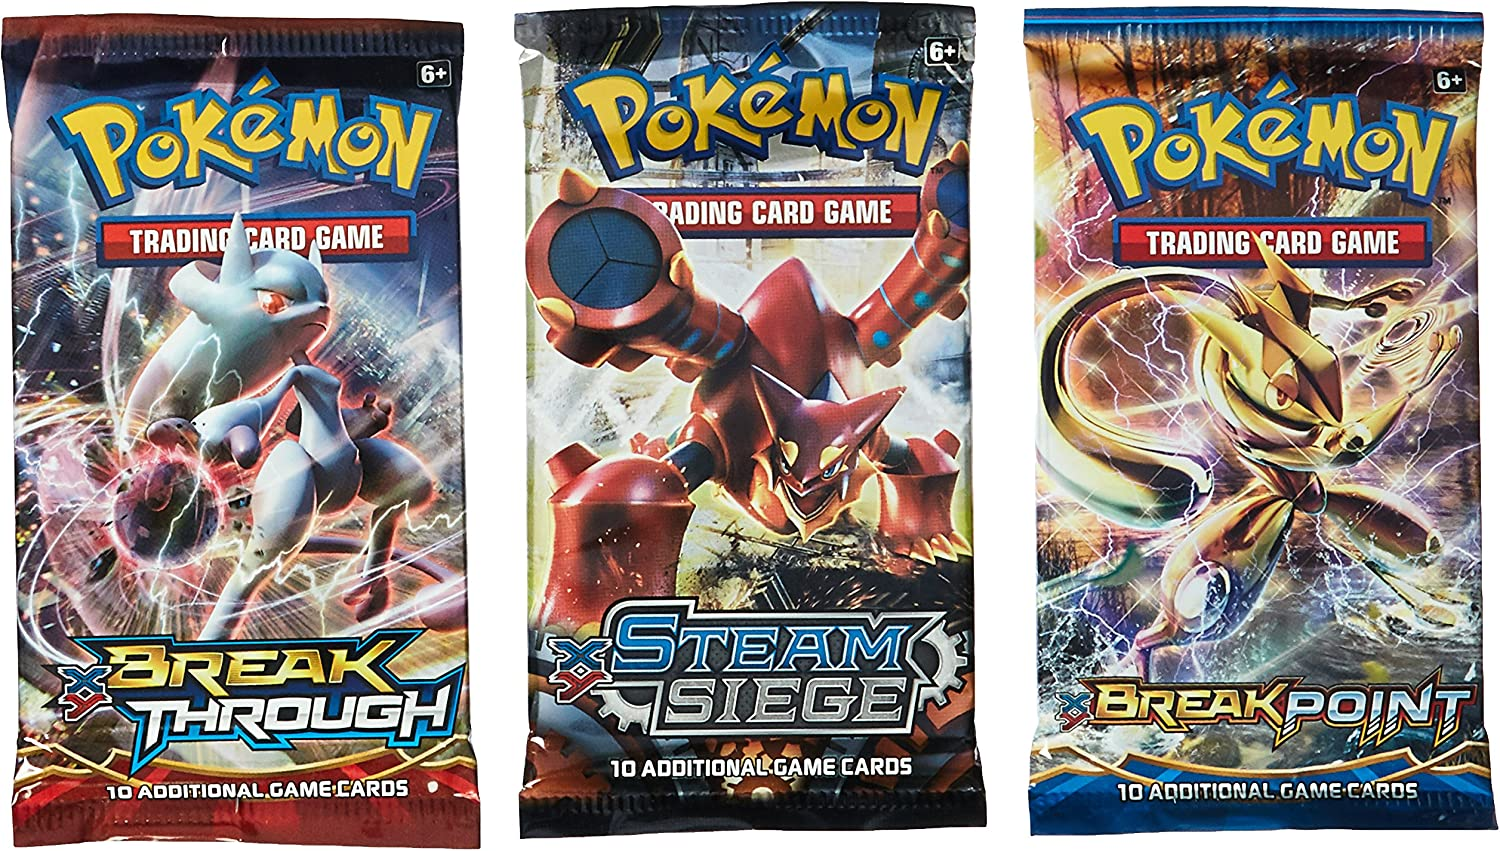 BrOOSTER PACK 100/% REAL POKEMON CARD LOT AUTHENTIC POKEMON TCG 50 CARDS C//U